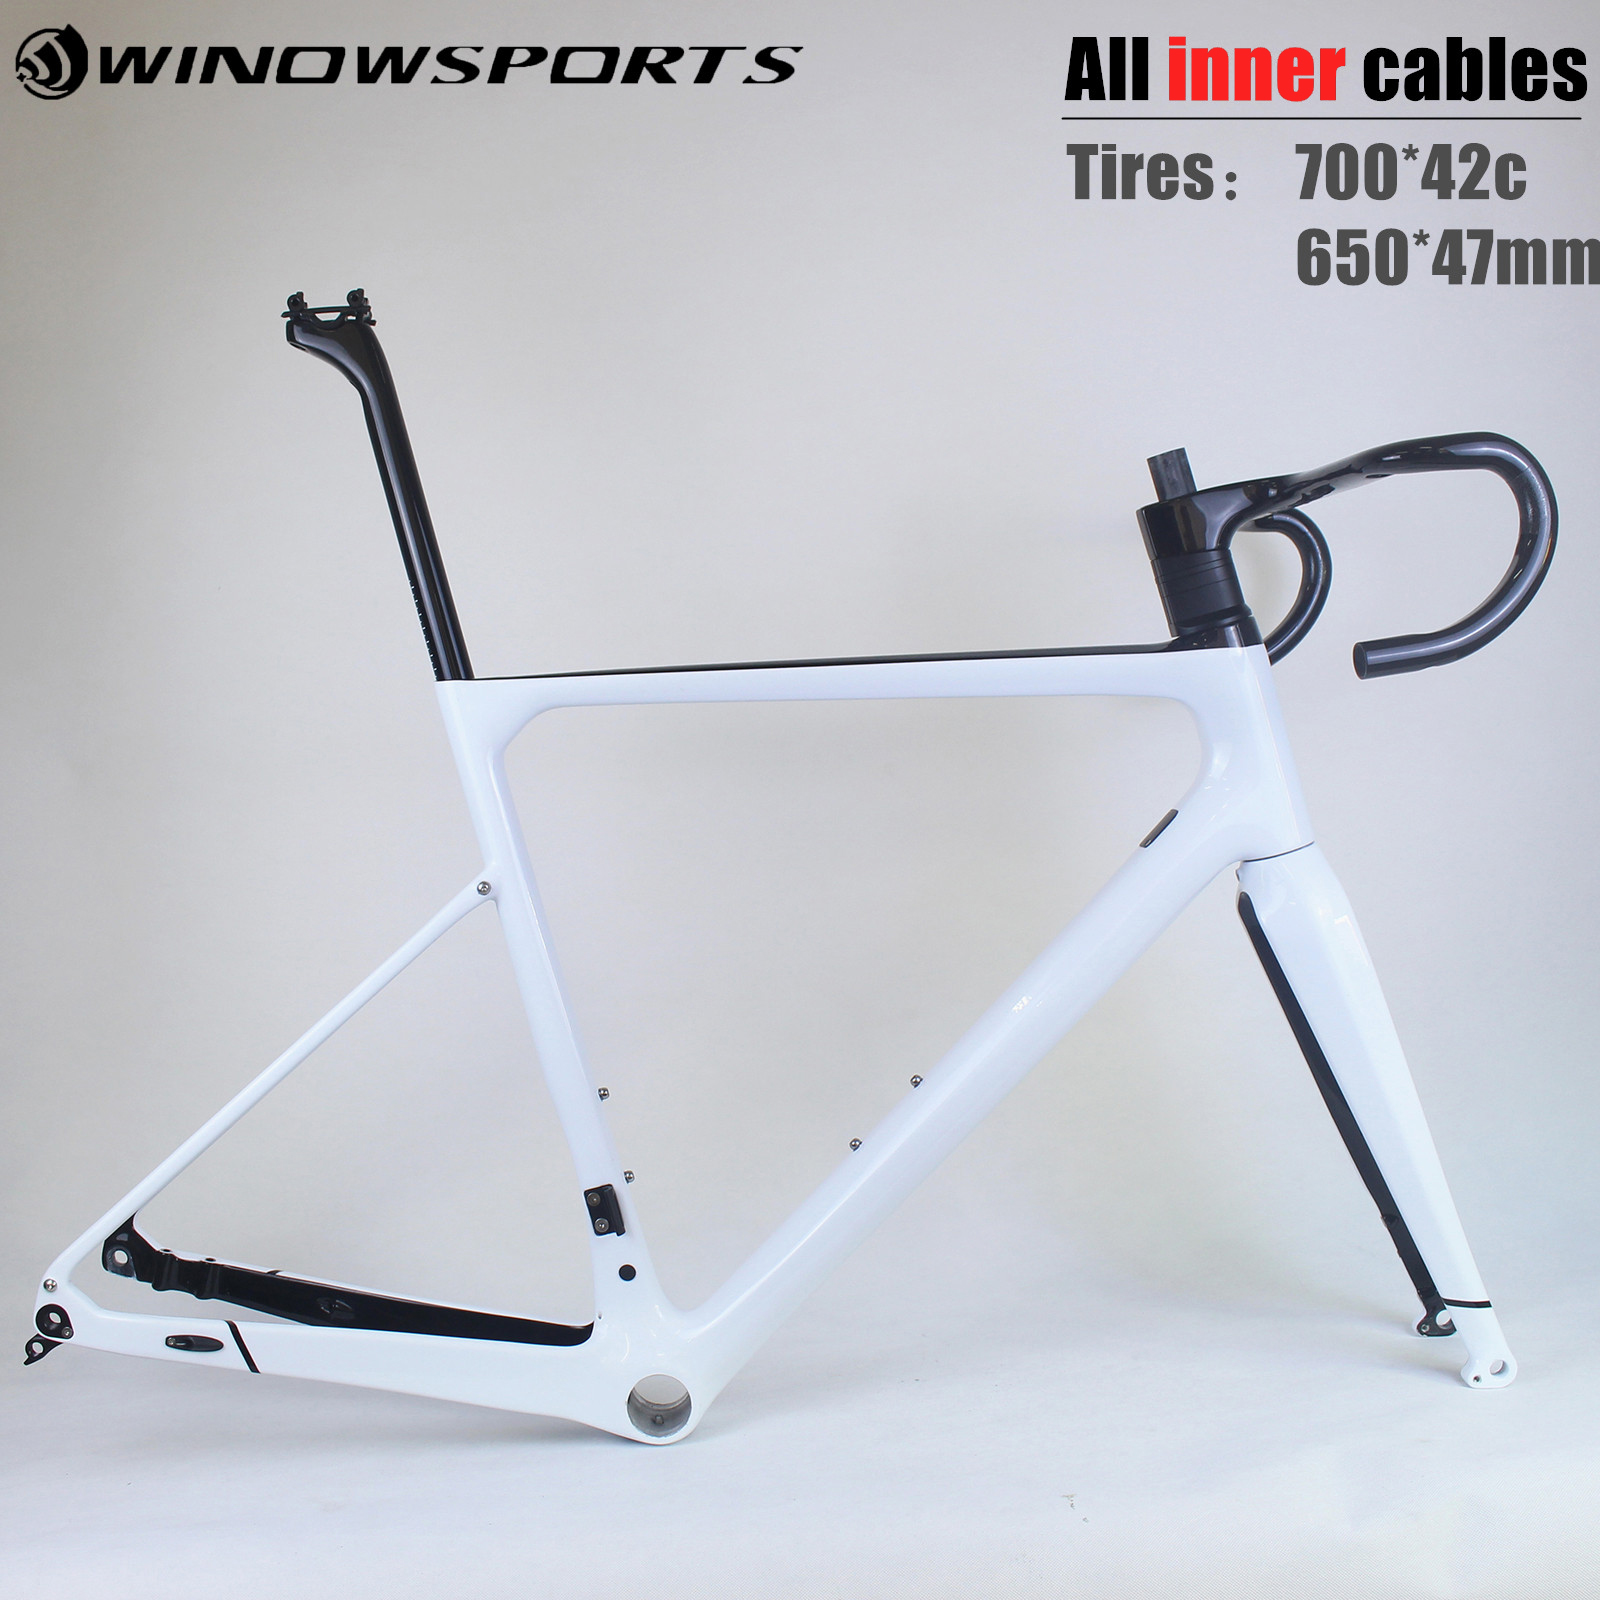 2020 New Carbon Gravel Bike Frame All Inner Cables Cyclocross Gravel Carbon Bicycle Frame Thru Axle 142*12 Max Tires 700*42c